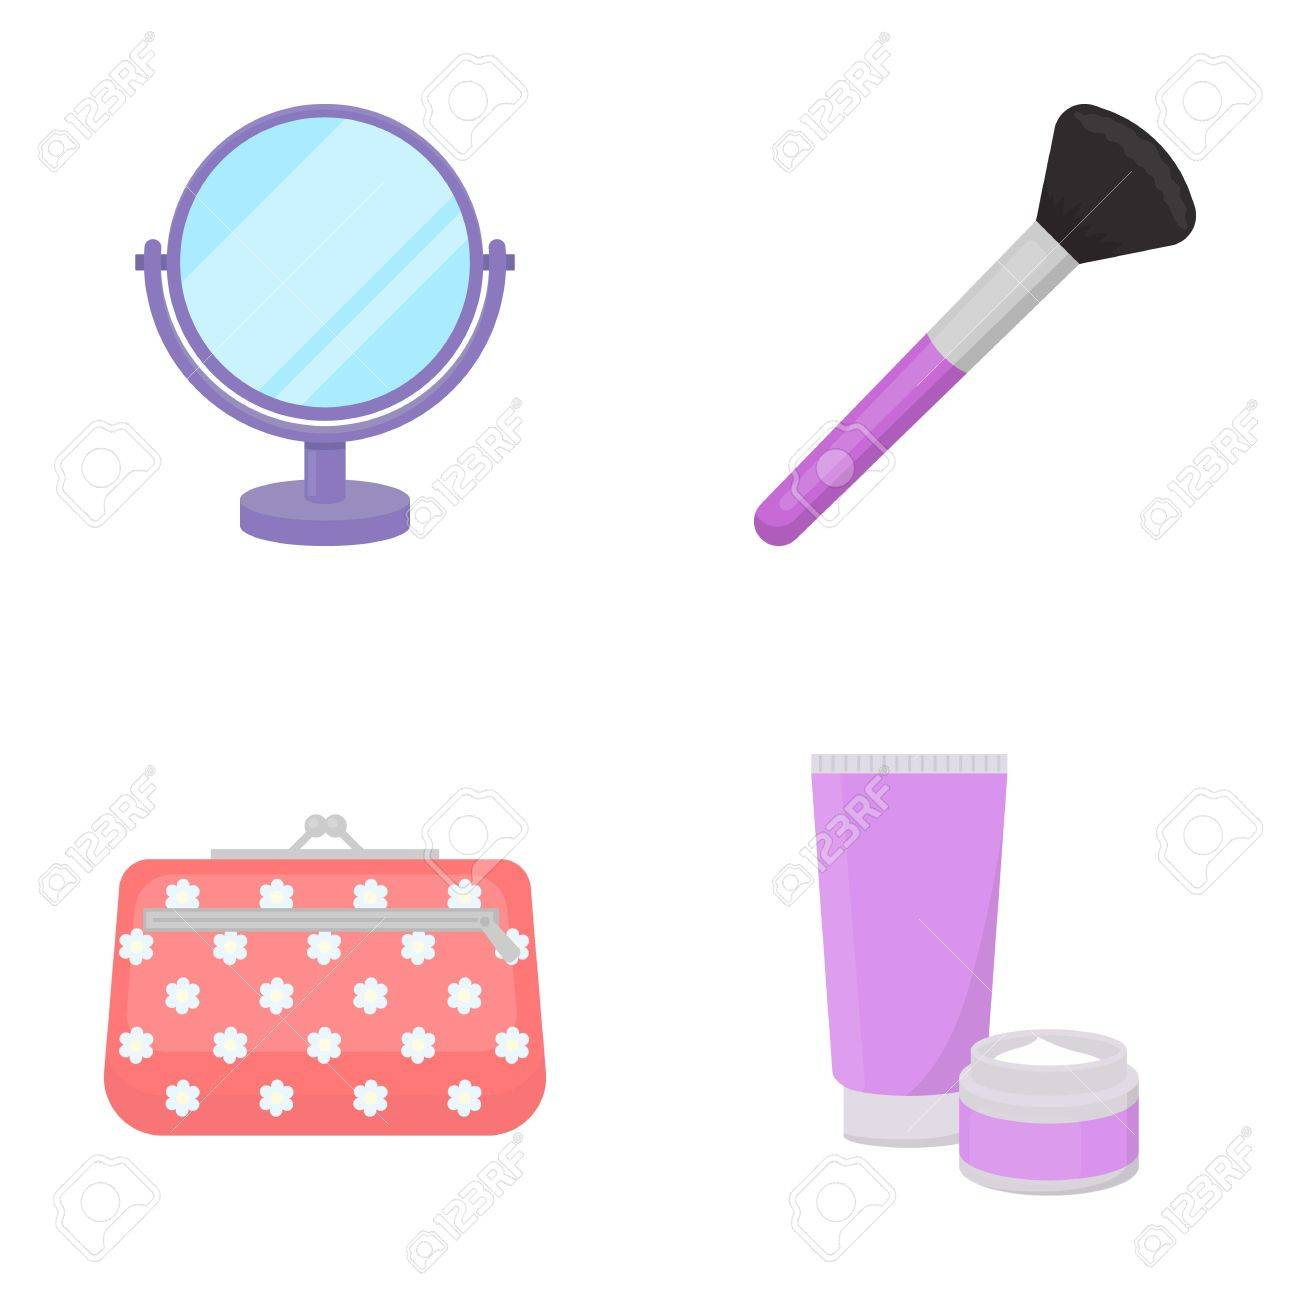 Table mirror, cosmetic bag, face brush, body cream.Makeup set collection icons